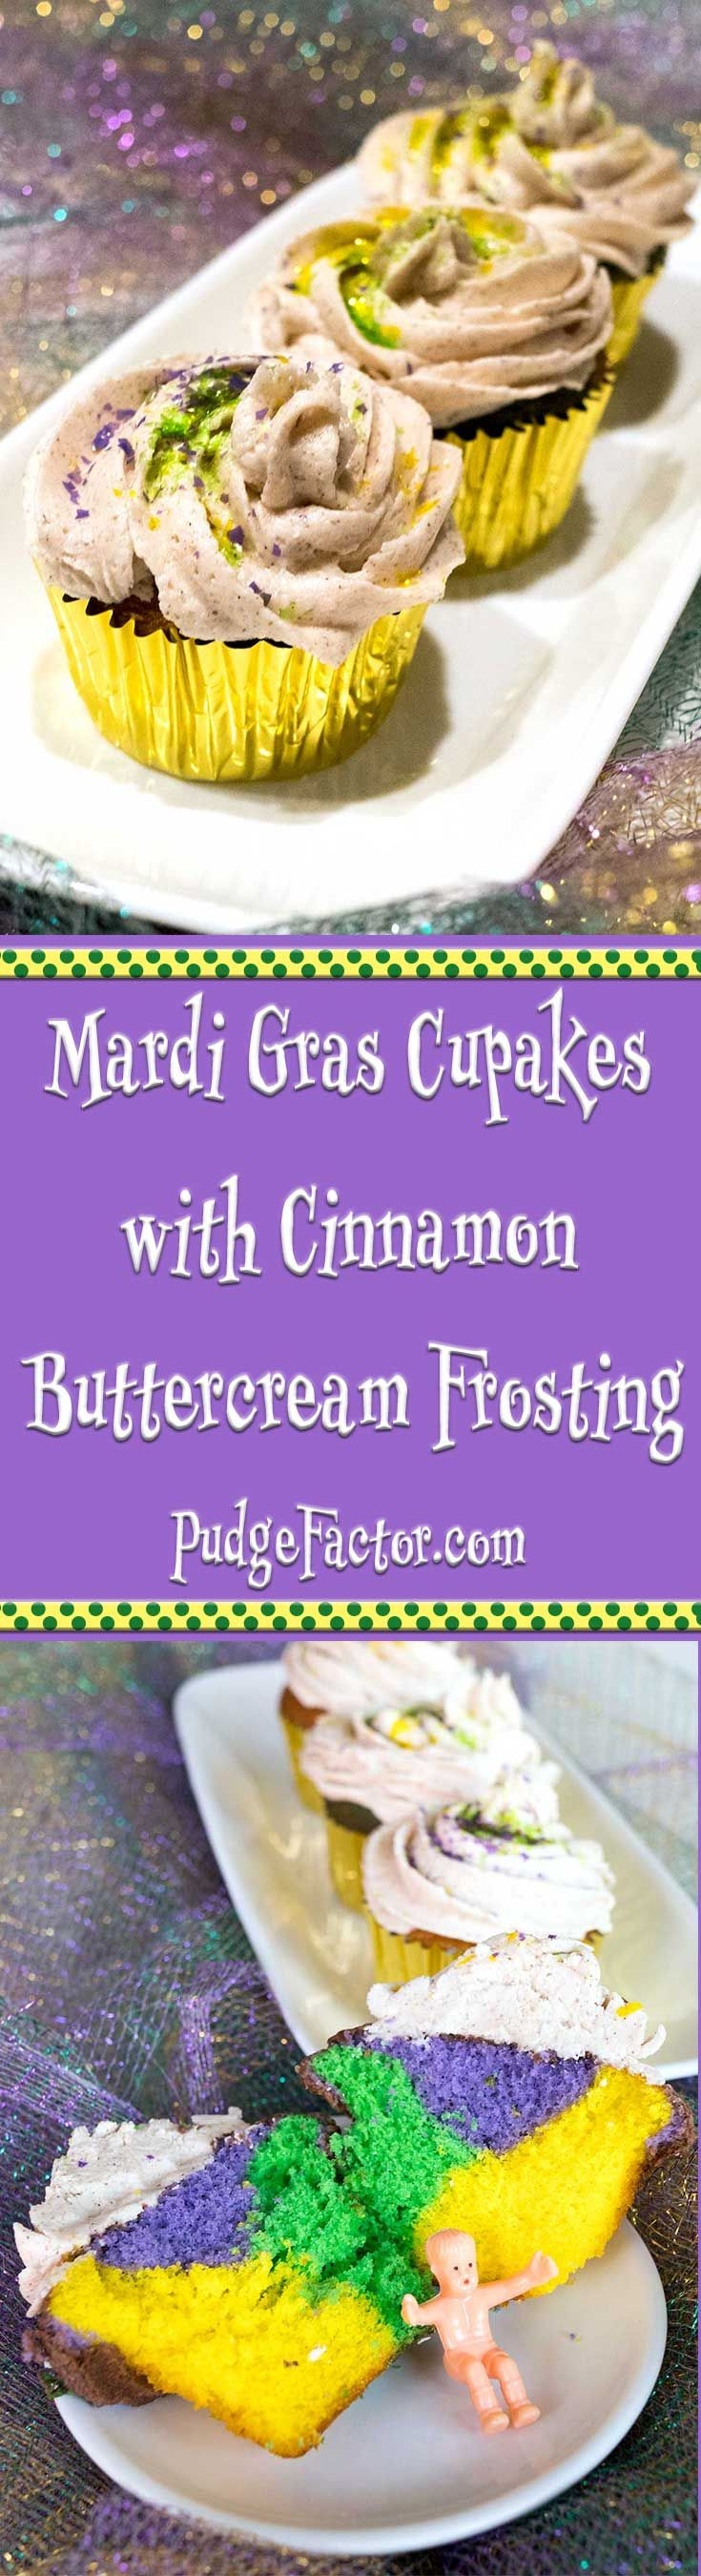 Laissez les bon temps rouler with easy to make Mardi Gras Cupcakes with Cinnamon Buttercream Frosting. Inside is a surprise sure to delight! via @c2king